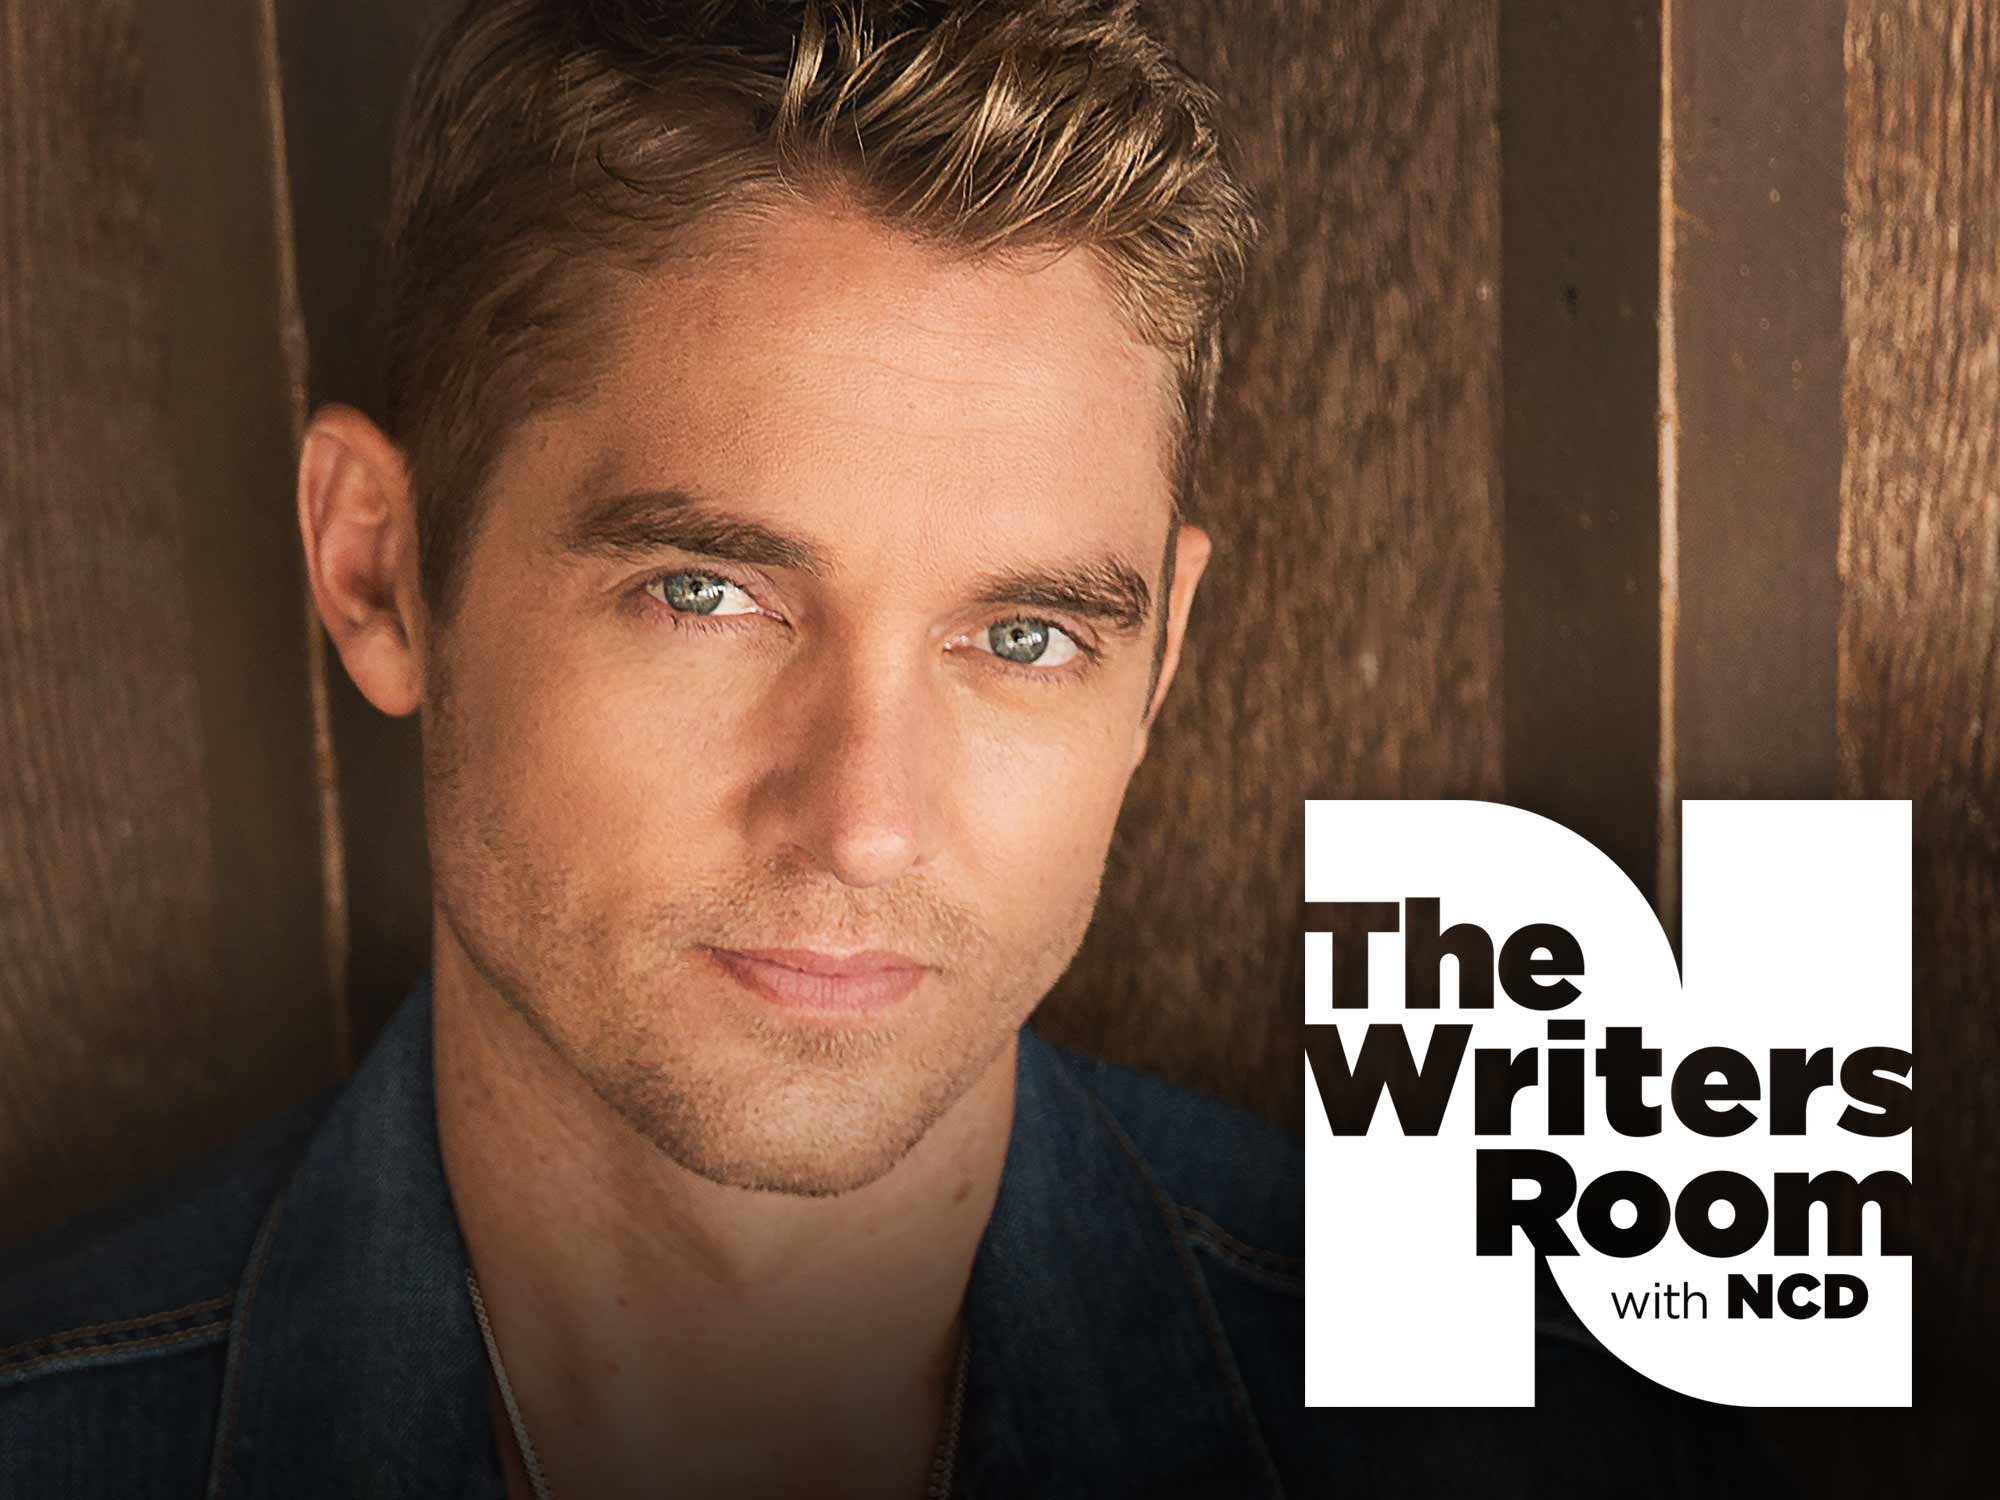 Brett Young Talks About Debut Single Going No. 1, New Album on Feb. 10 & the Talent-Rich State of California